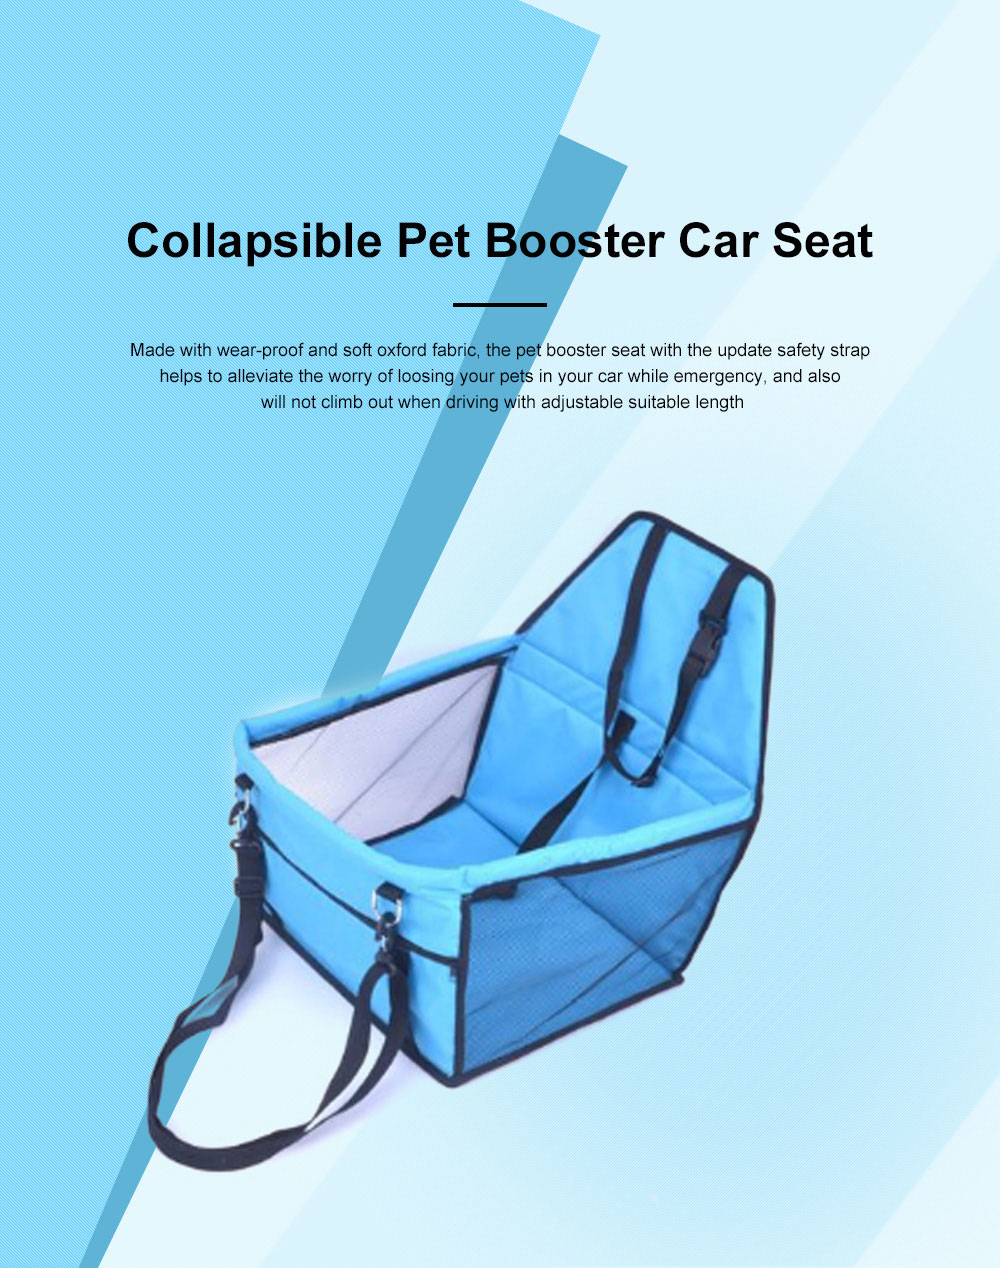 Collapsible Pet Booster Car Seat Cat Car Carrier with Safety Leash and Zipper Storage Pocket with 2 Support Bars for Small Dog 0